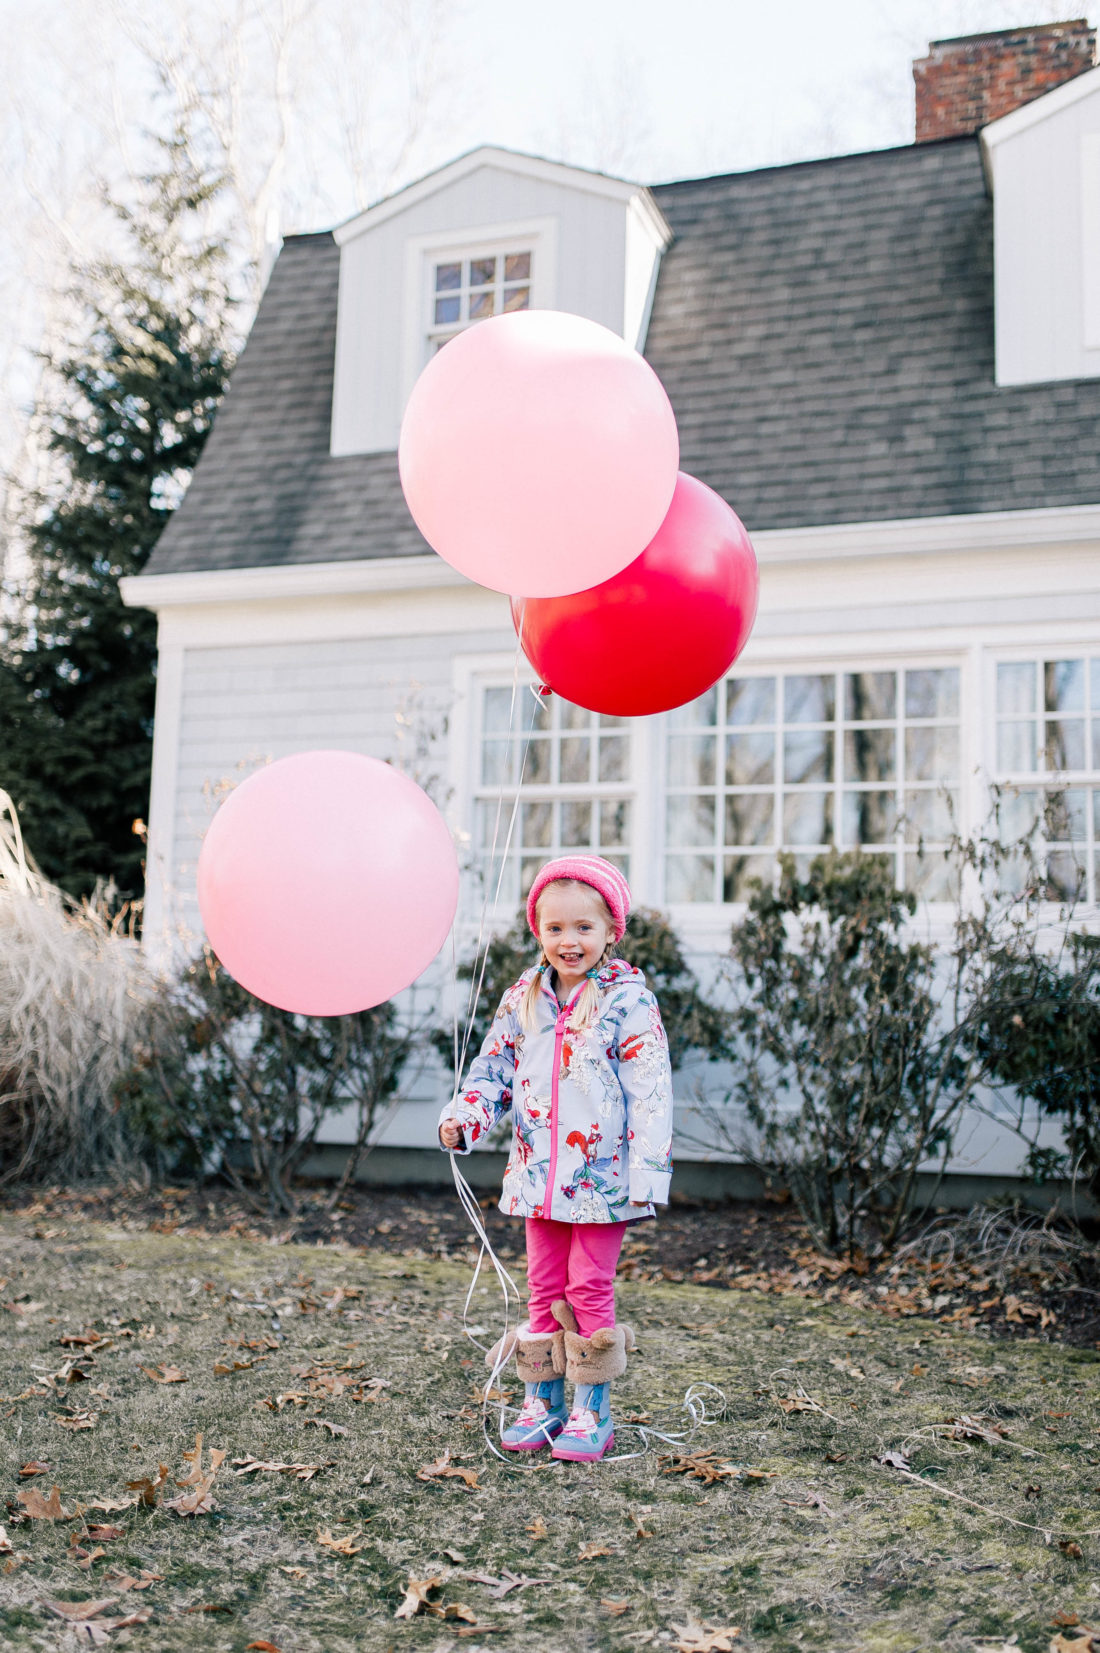 Marlowe Martino frolics through the garden of her Connecticut home holding balloons and wearing a Peter Rabbit themed outfit